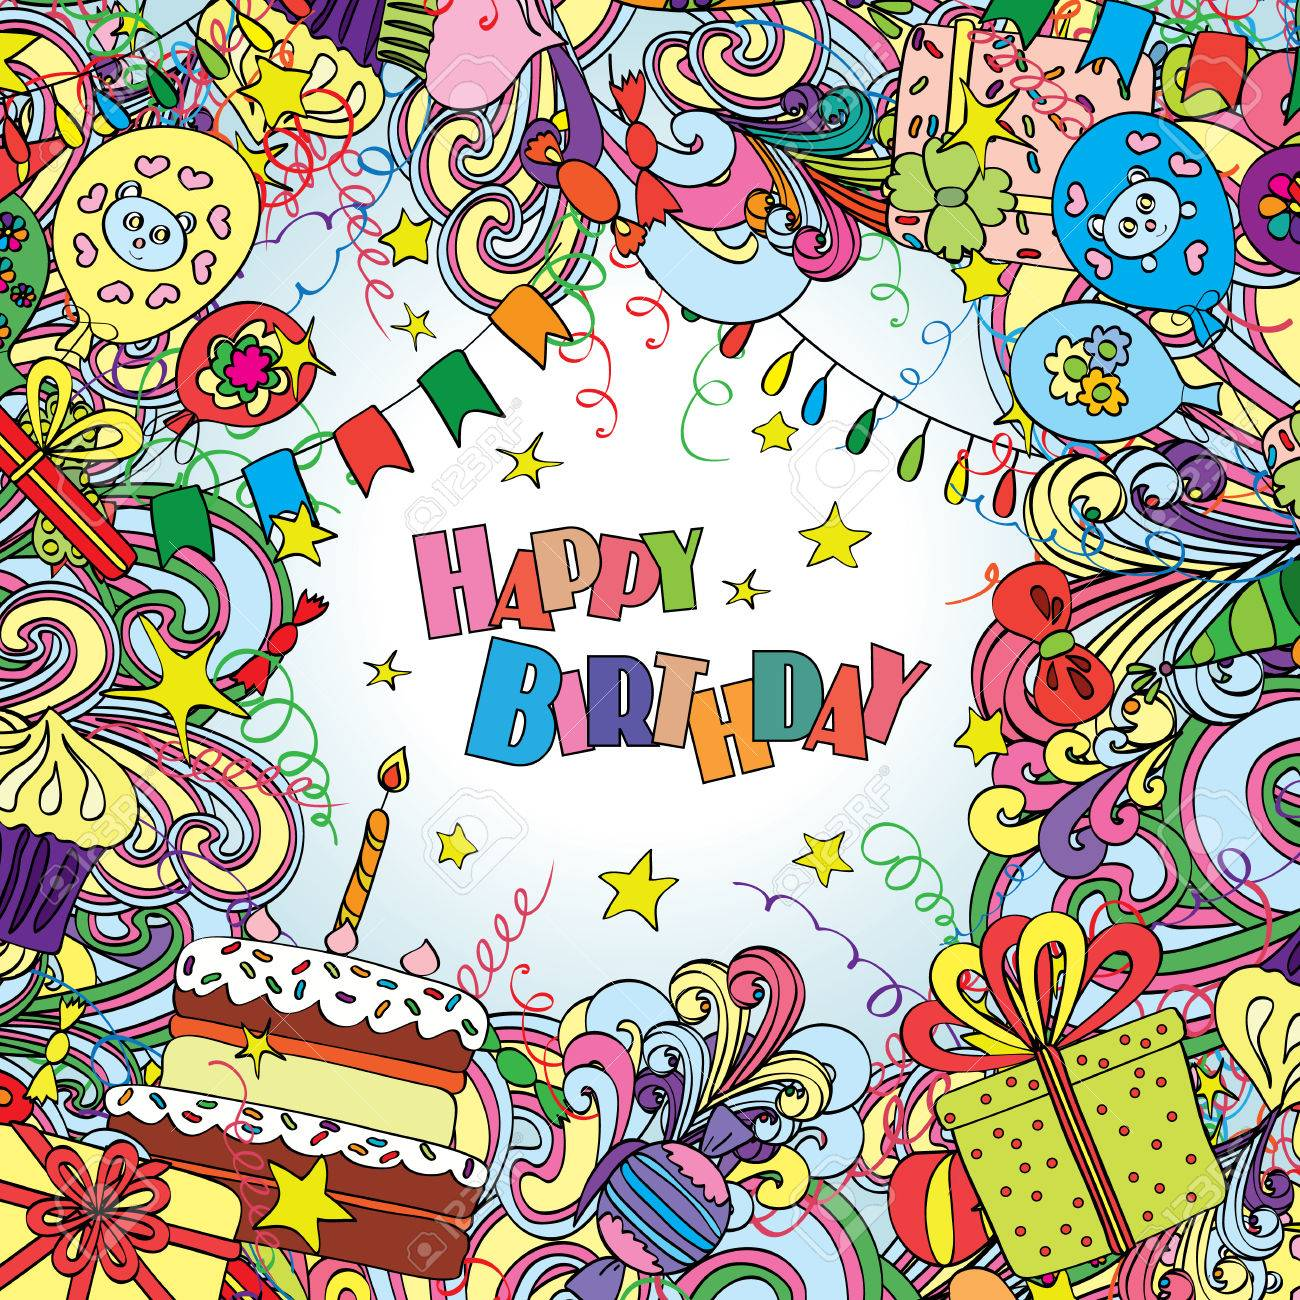 Happy Birthday greeting card on white background with celebration elements. - 53985602